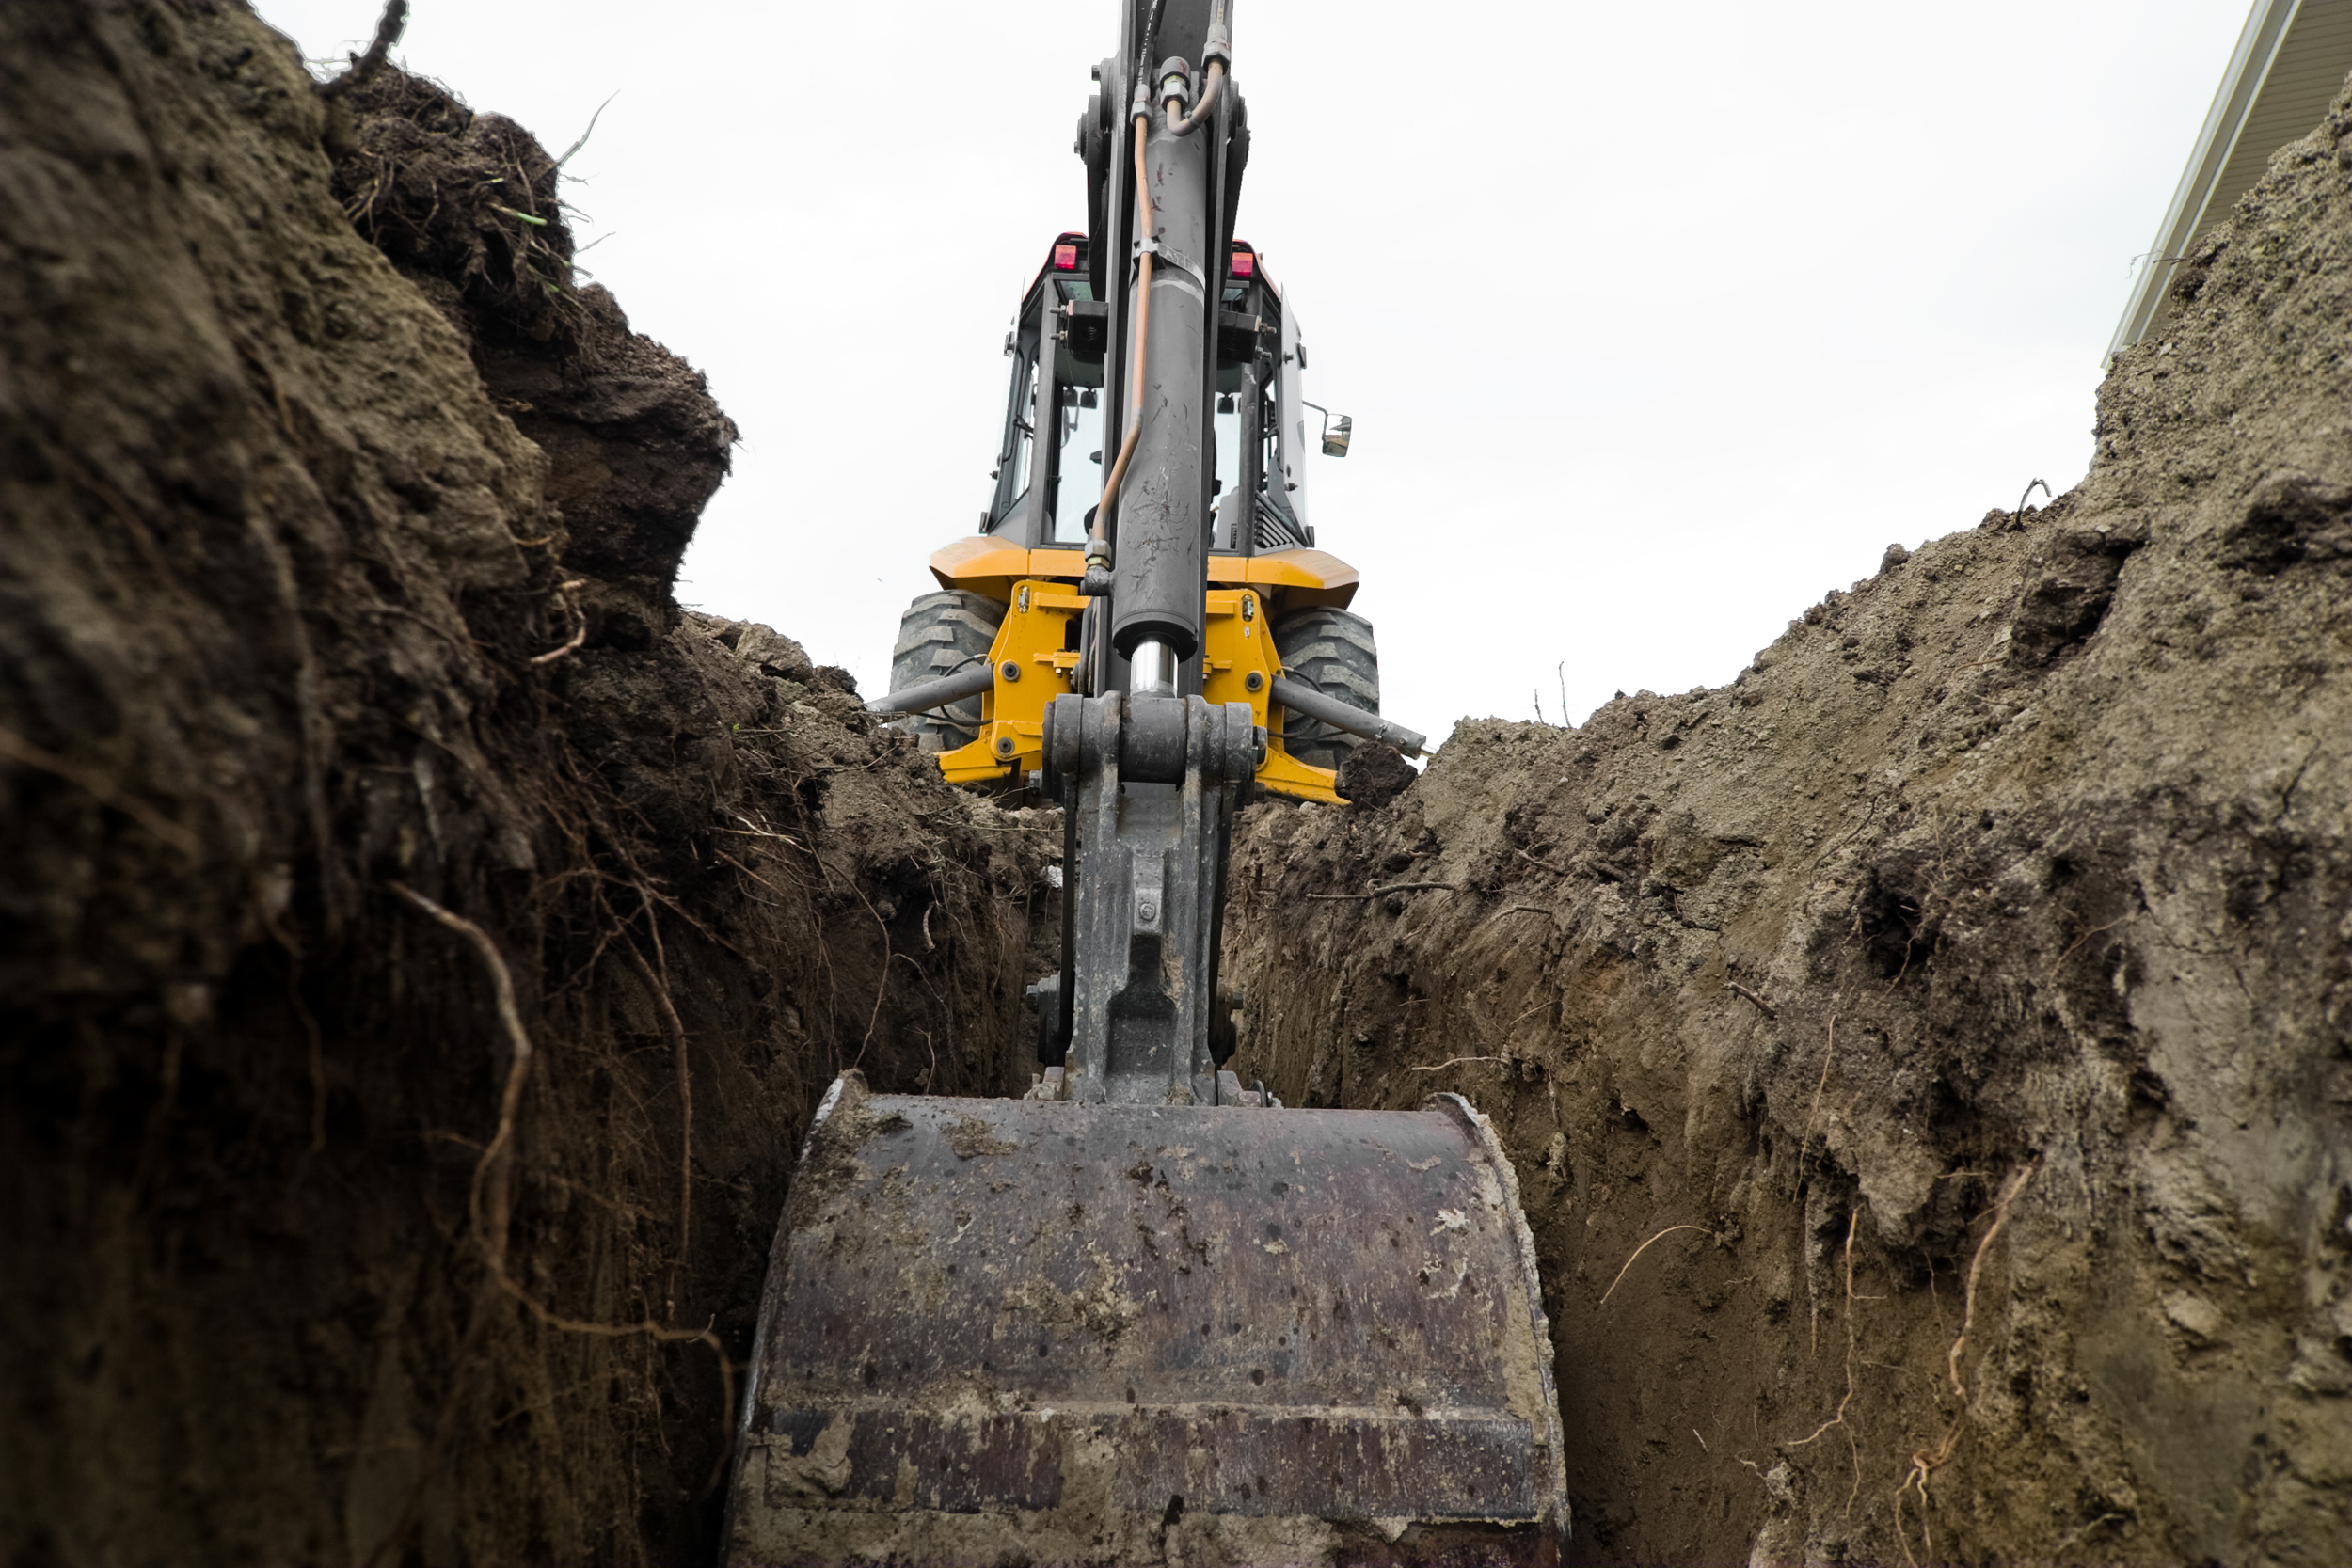 Excavation & Trenching Safety